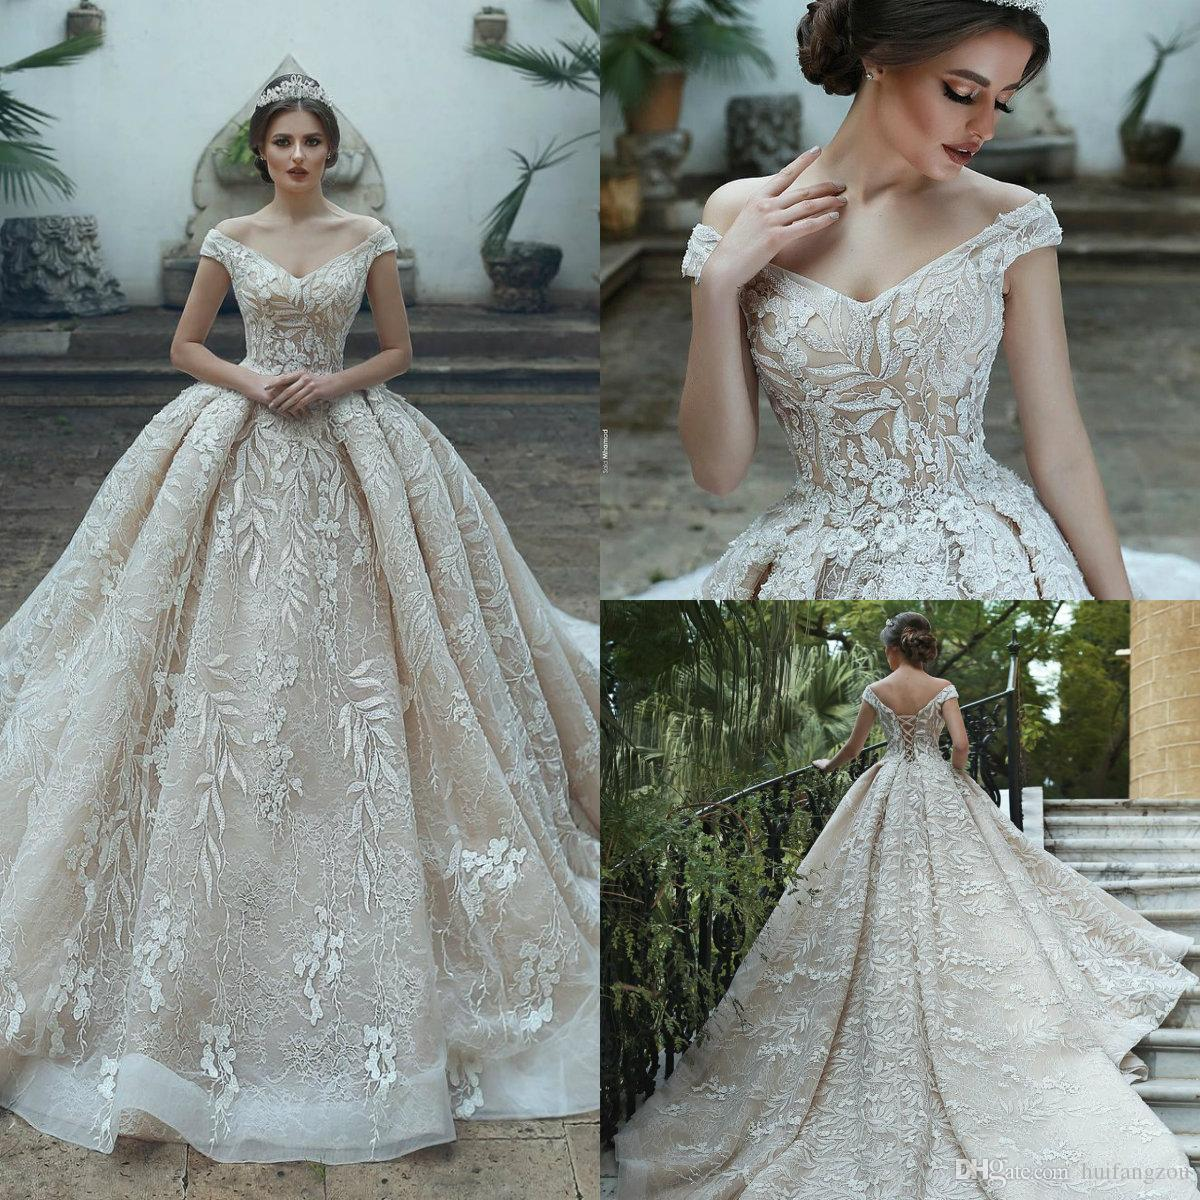 2018 2019 Vintage Plus Size Wedding Dresses Off Shoulder Appliques Lace  Ball Gown Wedding Dress With Long Train Luxury Bridal Gowns From  Huifangzou, ...